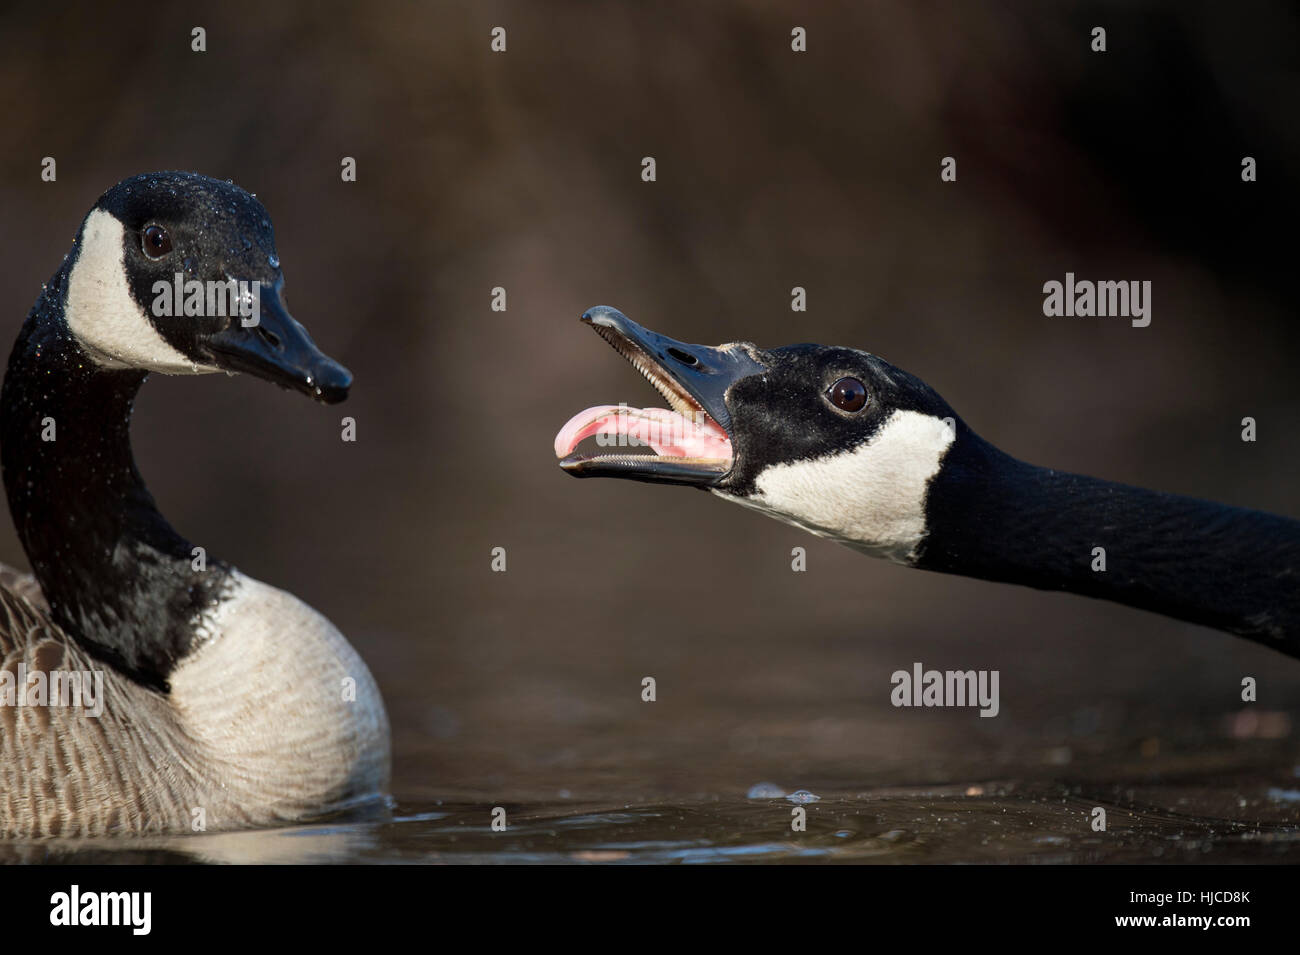 A Canada Goose calls loudly at a nearby goose invading its territory. - Stock Image